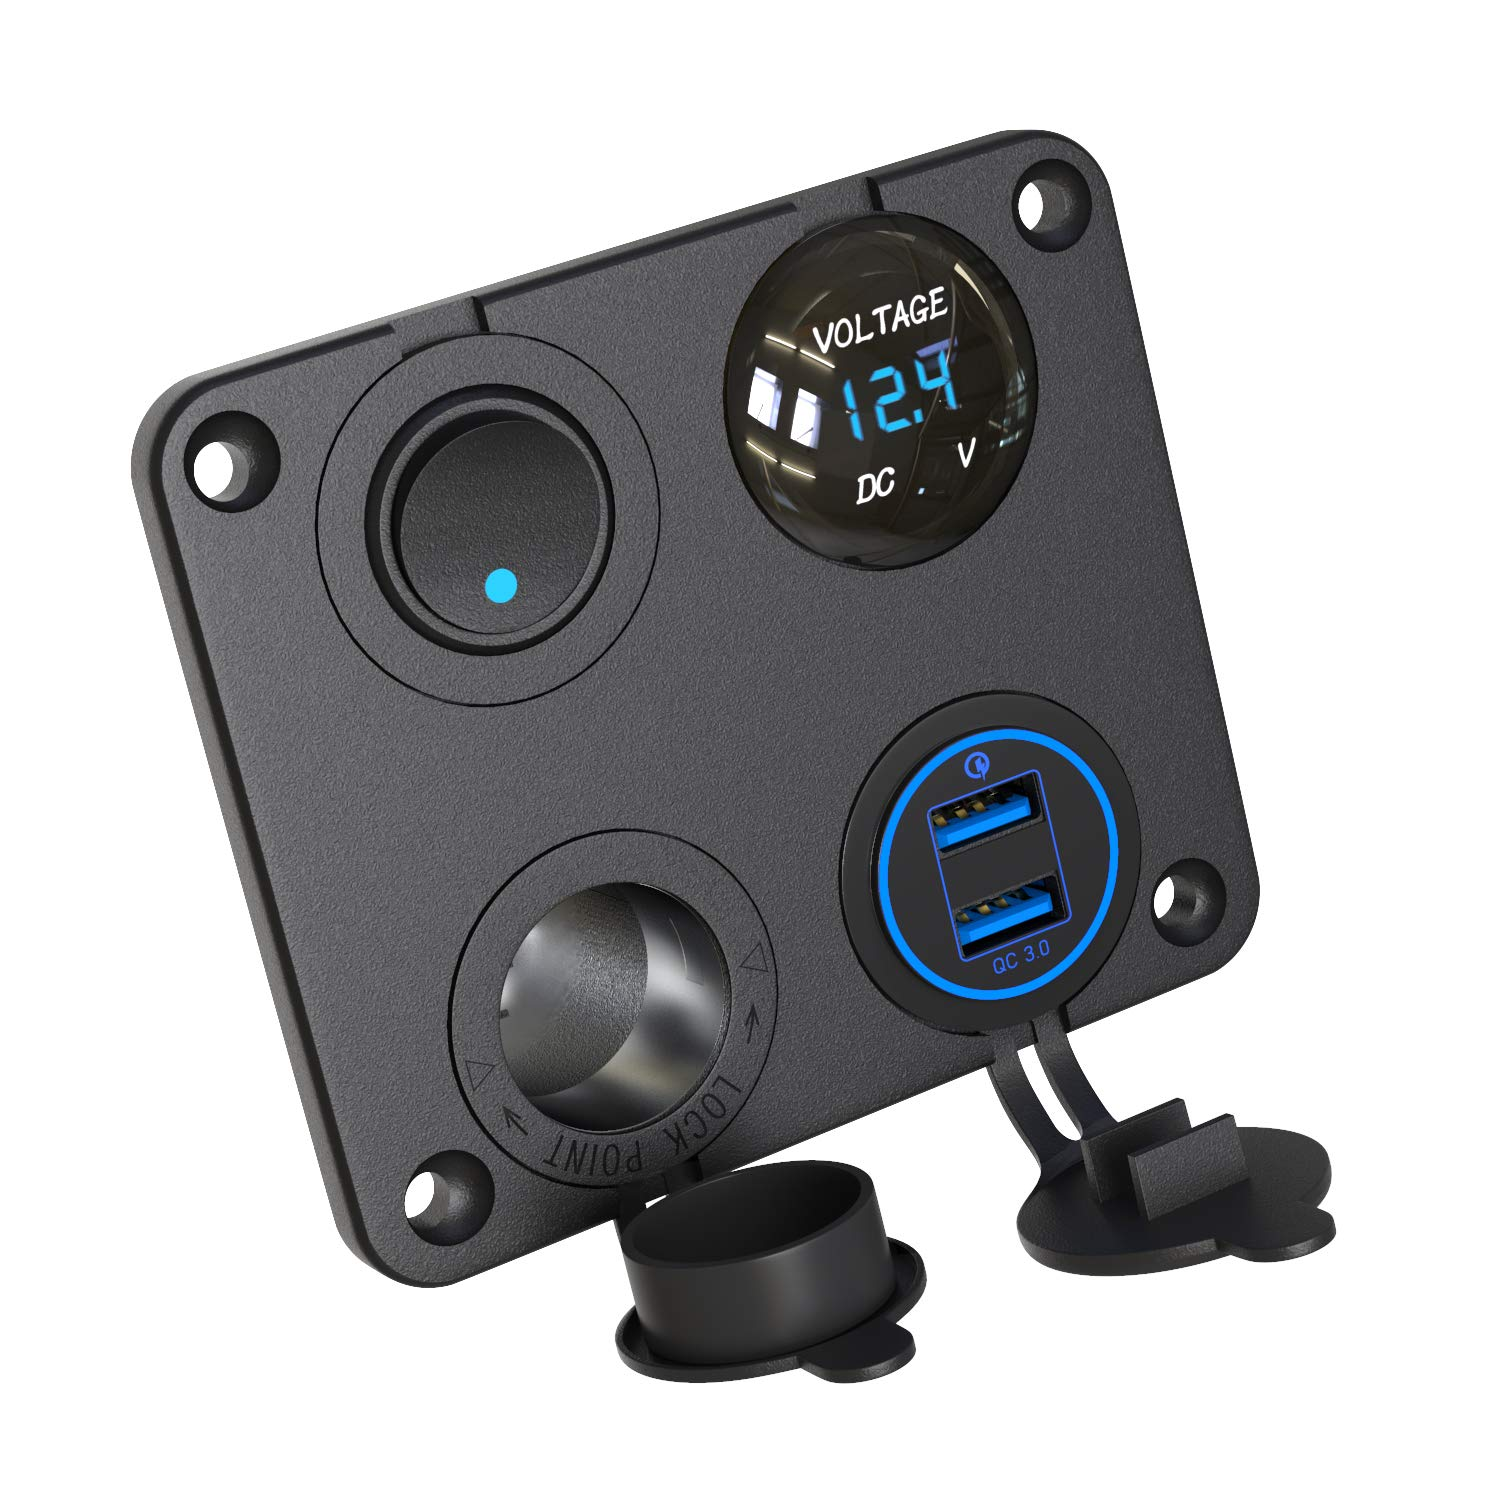 QC 3.0 Dual USB Charger Socket Panel 12V Power Outlet with LED Voltmeter Switch Waterproof Cigarette Lighter Socket Quick Charge 3.0 for Rocker Switch Panel on Car Marine Boat UTV ATV RV by Qidoe